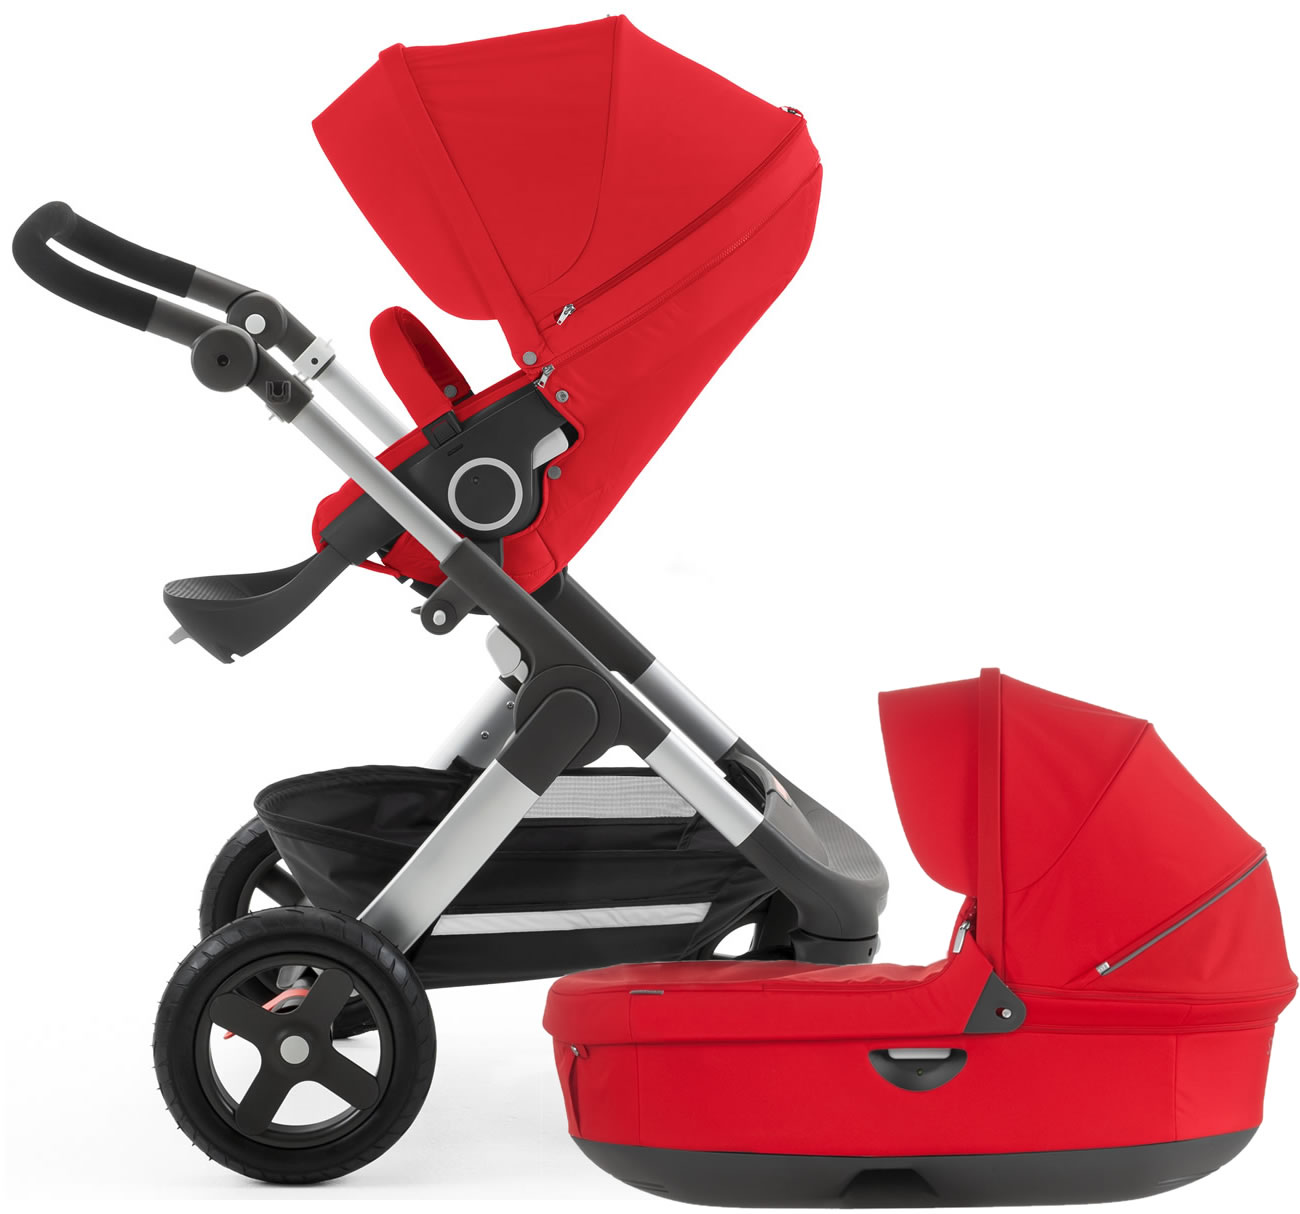 Stokke Trailz Stroller & Carrycot - Red